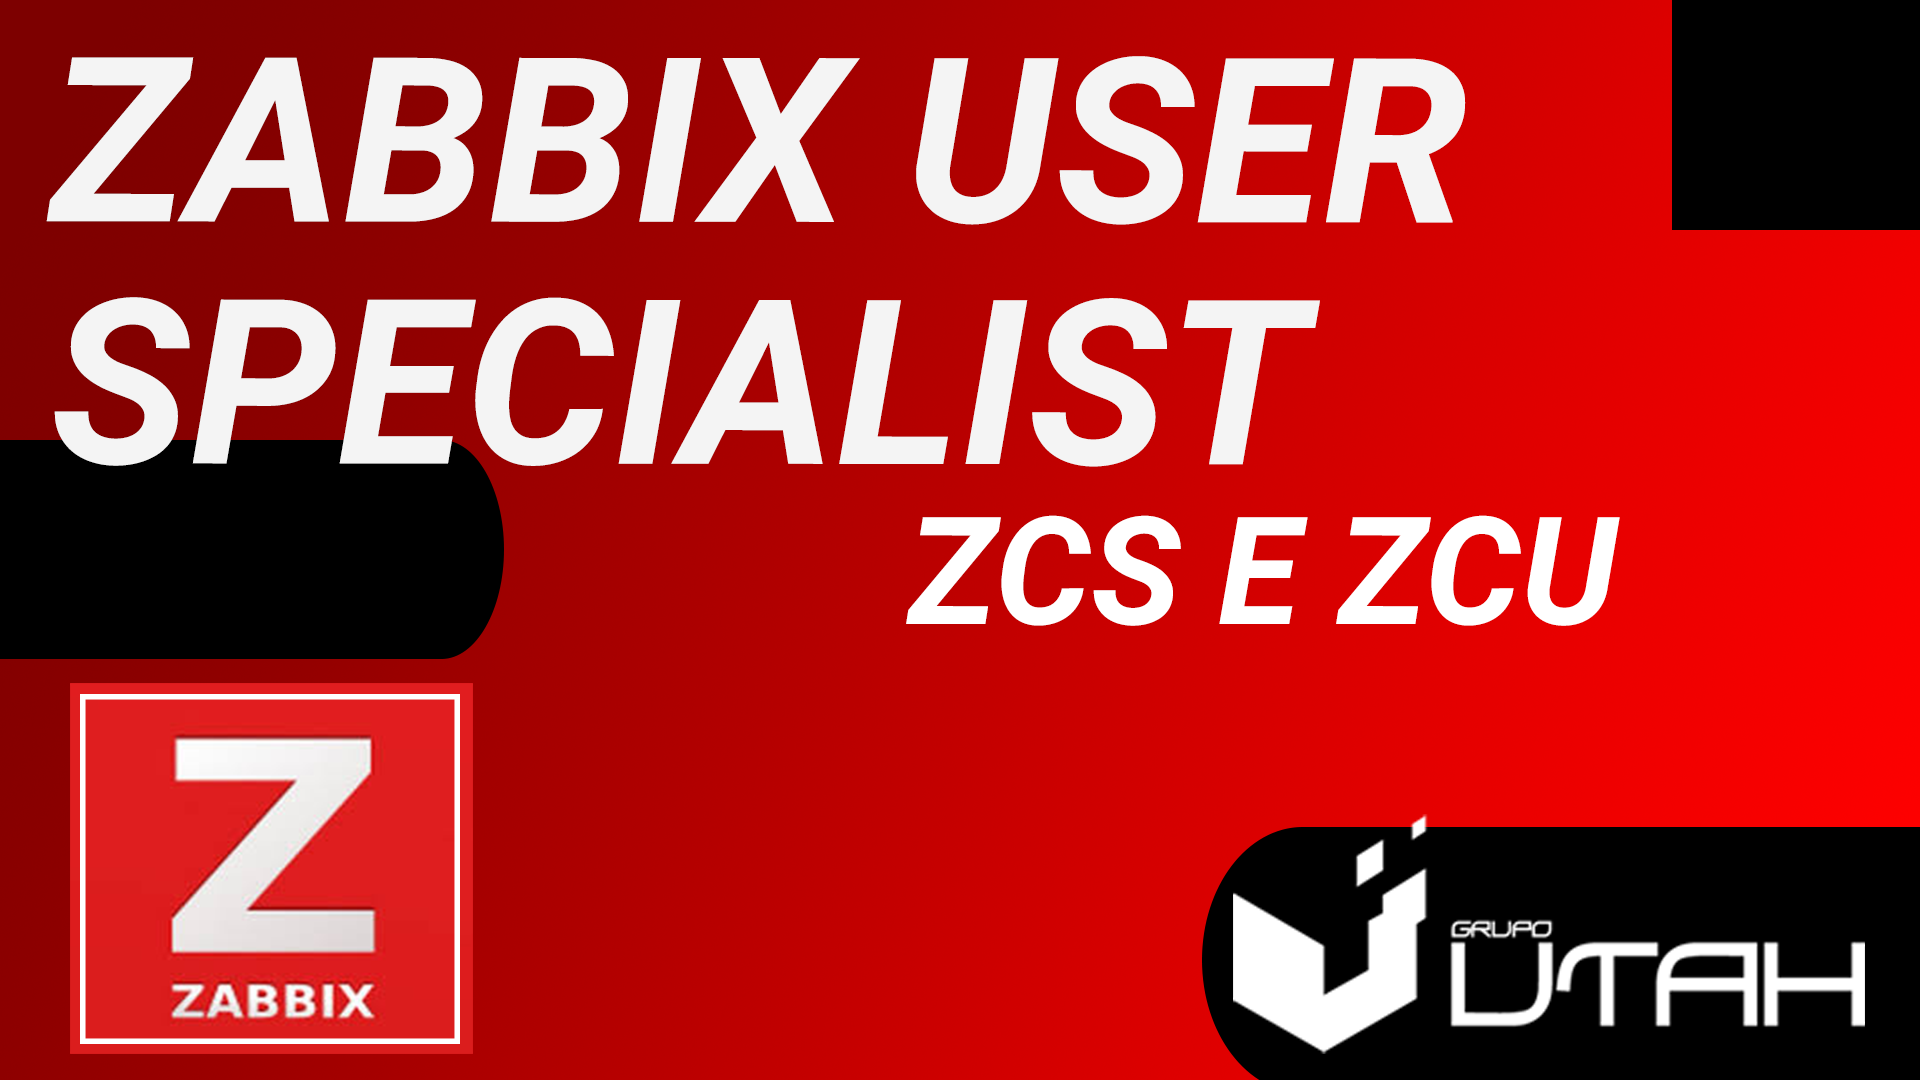 ZBX - USER AND SPECIALIST - N1 - 2021 - EAD